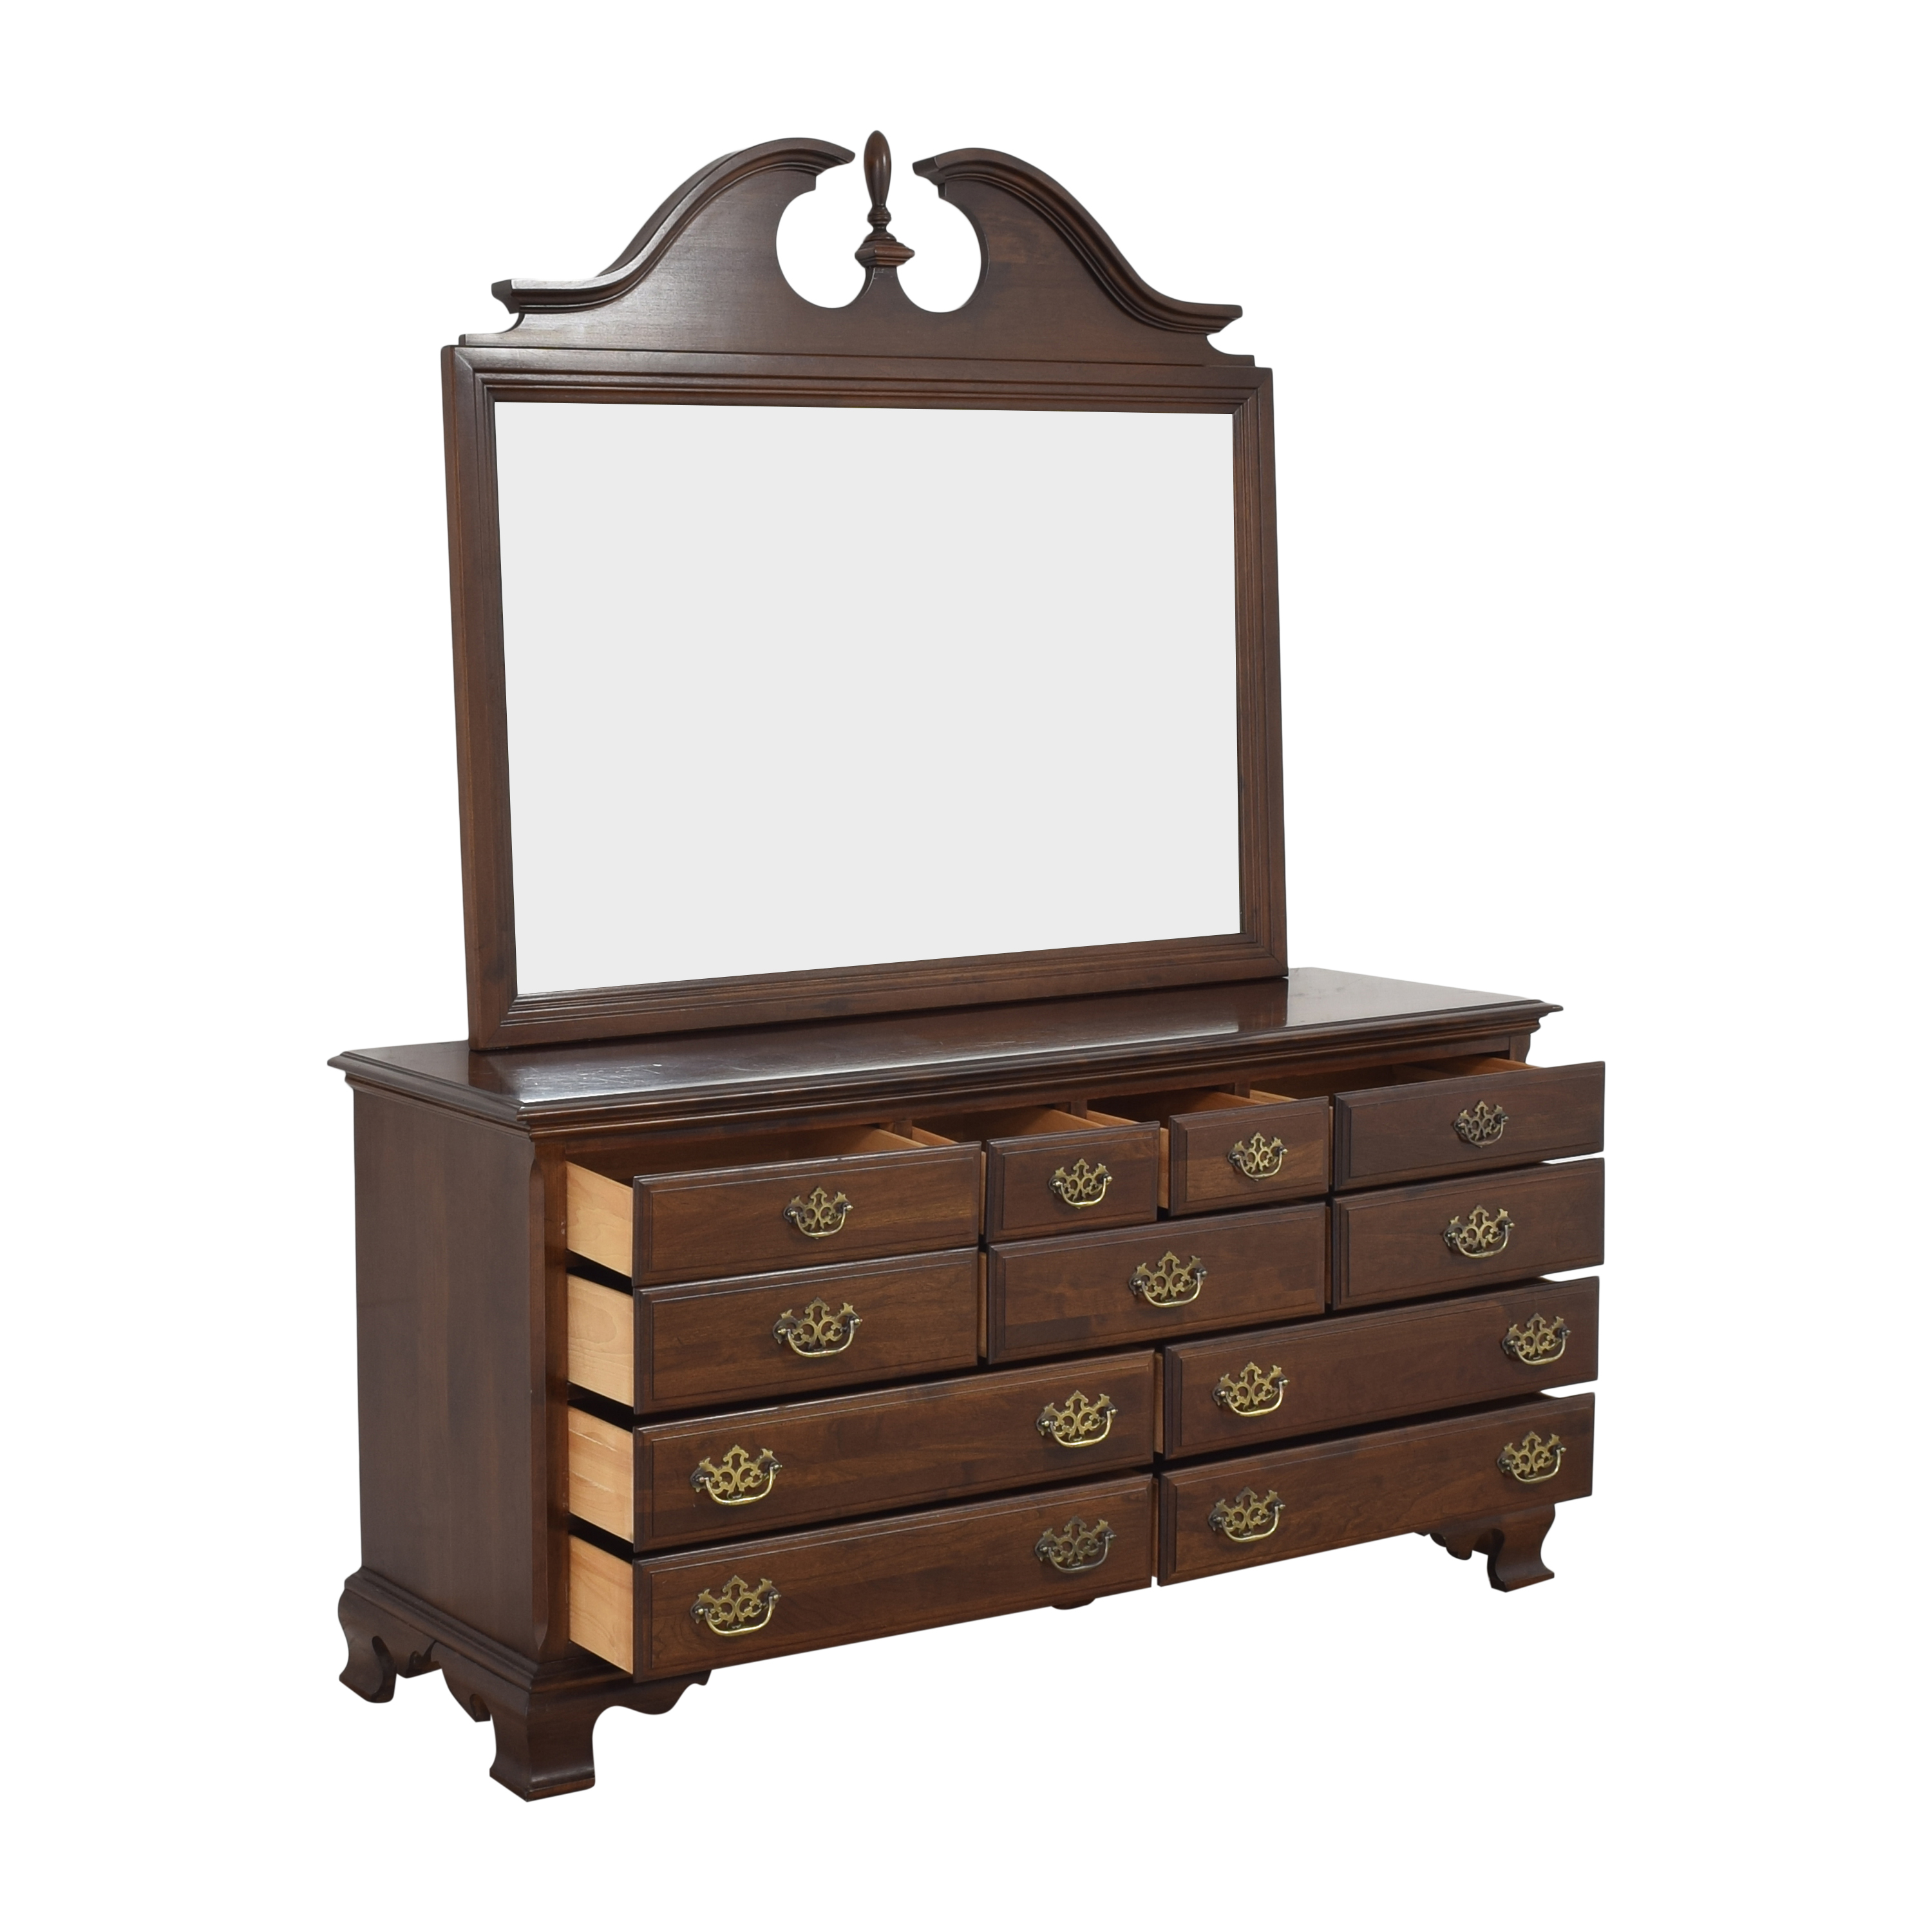 Chippendale-Style Dresser with Mirror used